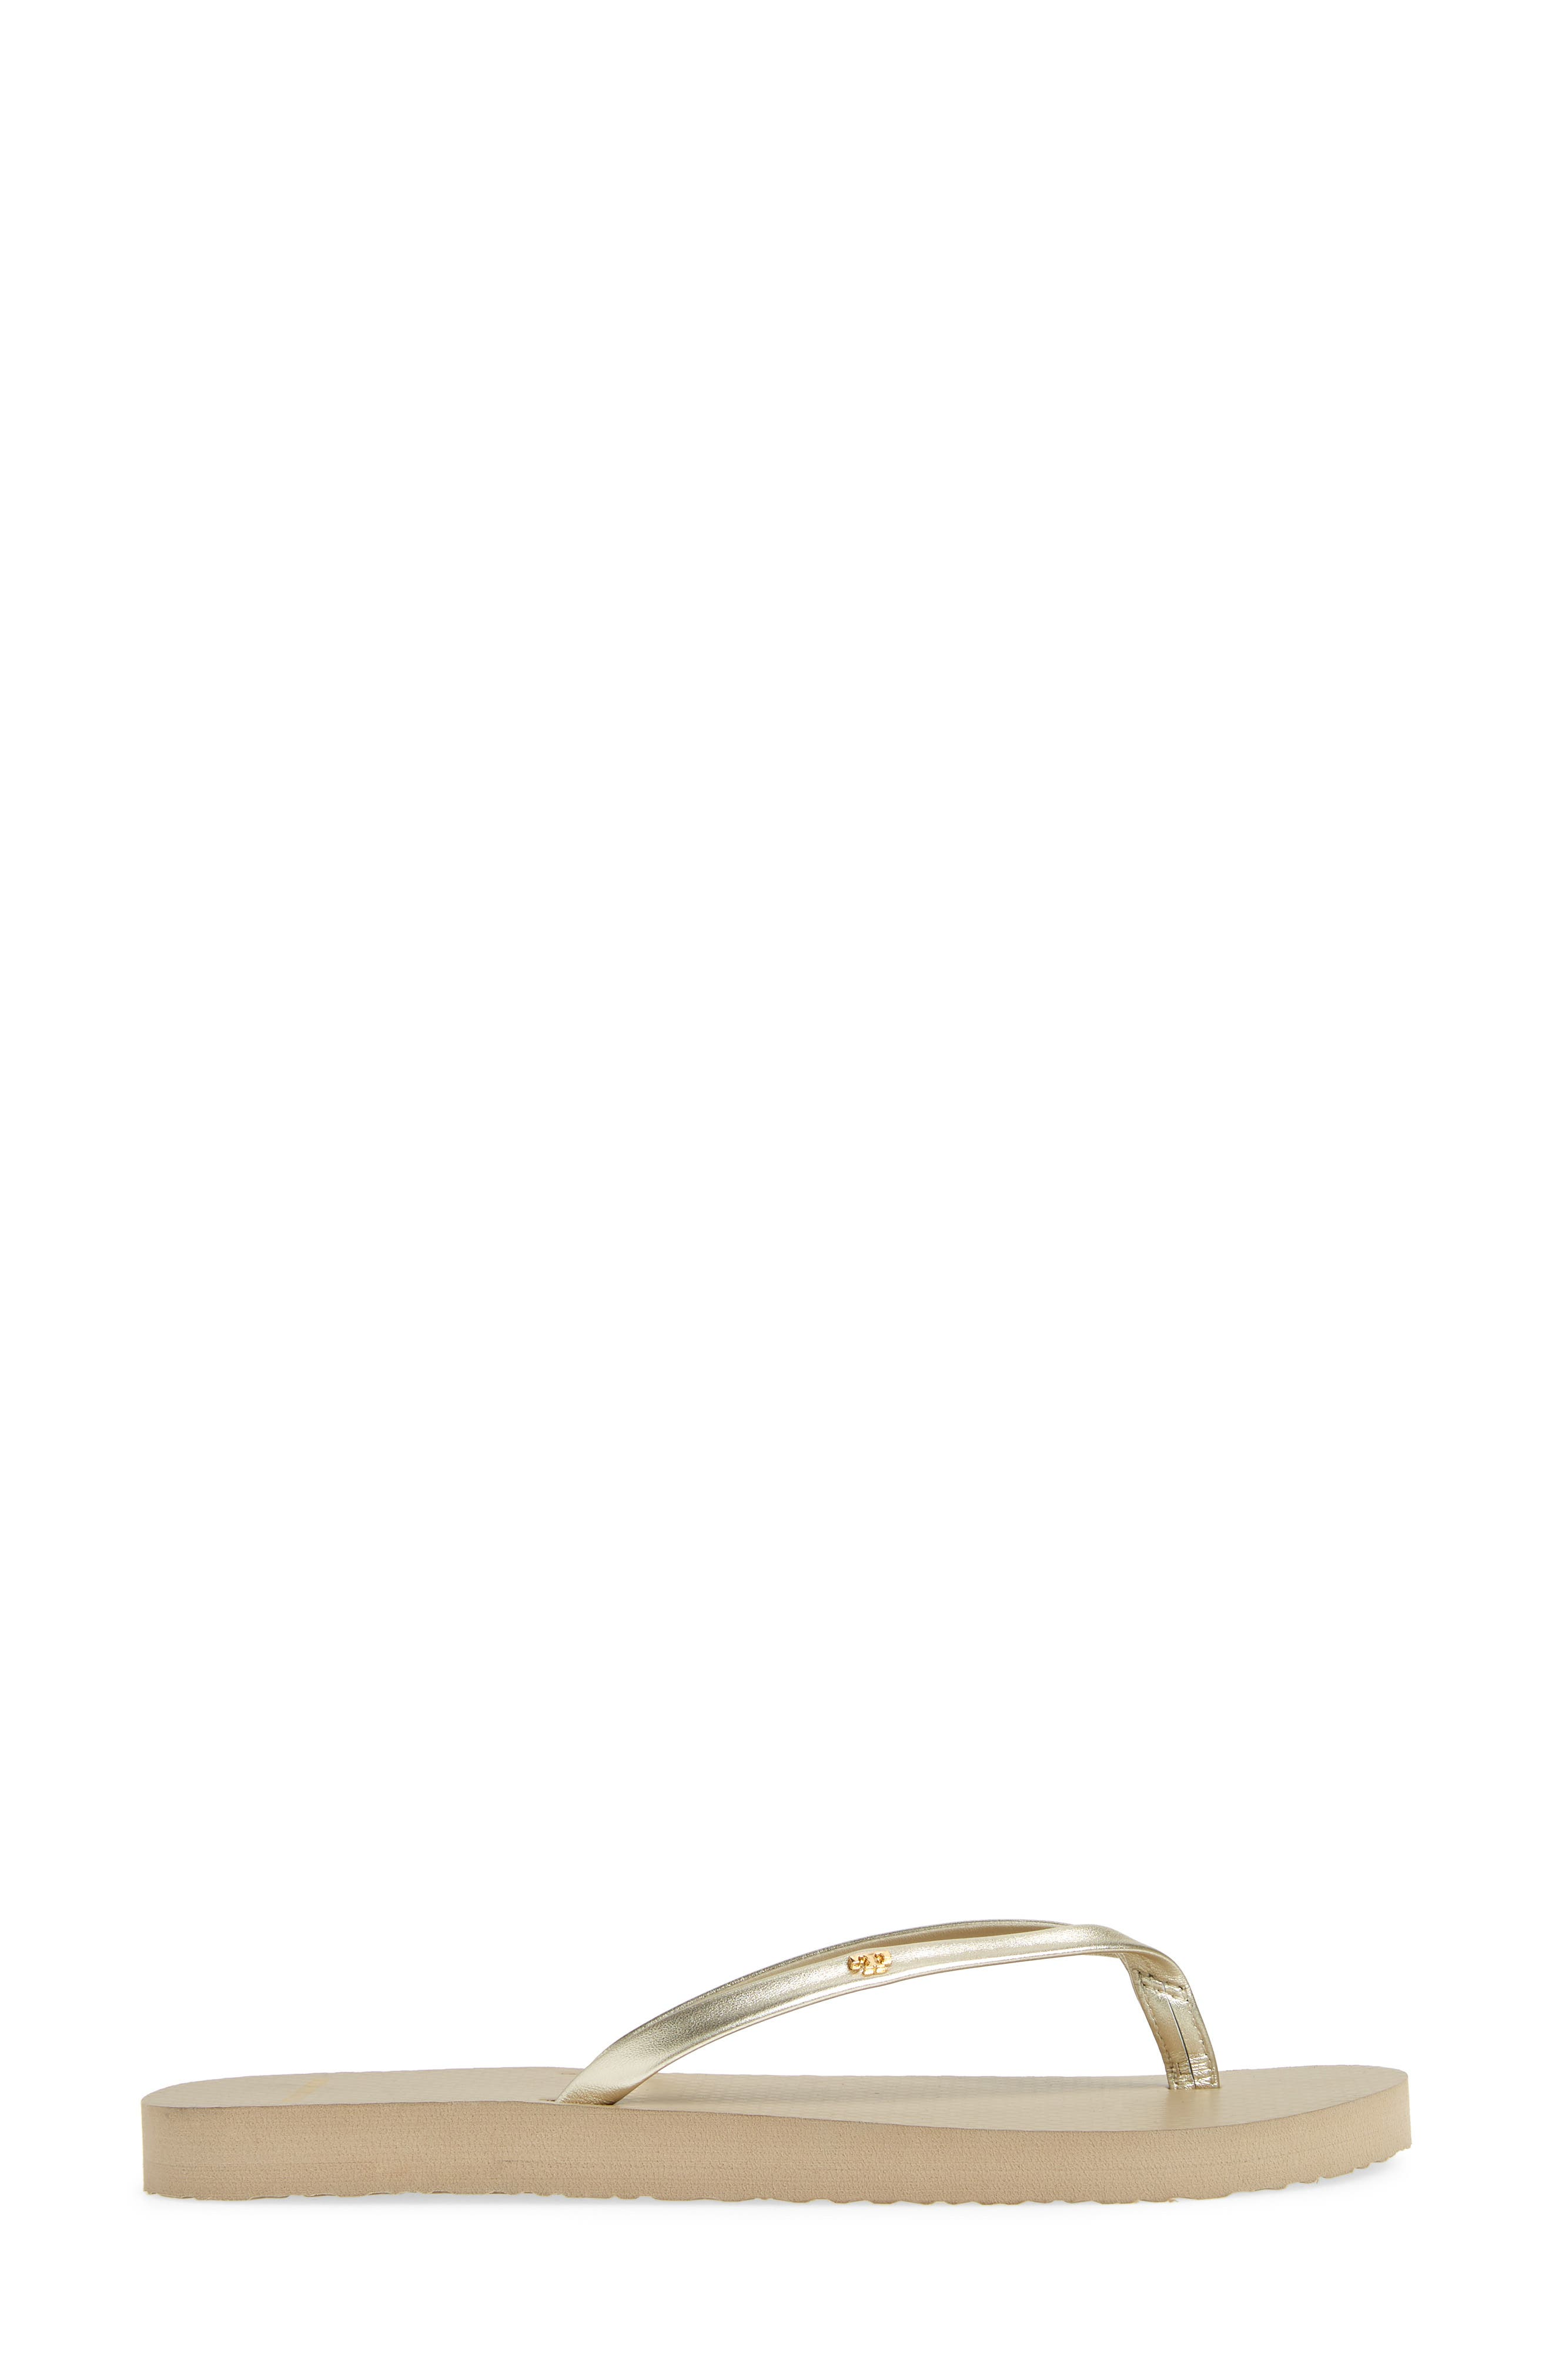 TORY BURCH, Logo Metallic Flip Flop, Alternate thumbnail 3, color, SPARK GOLD/ LIGHT TAUPE